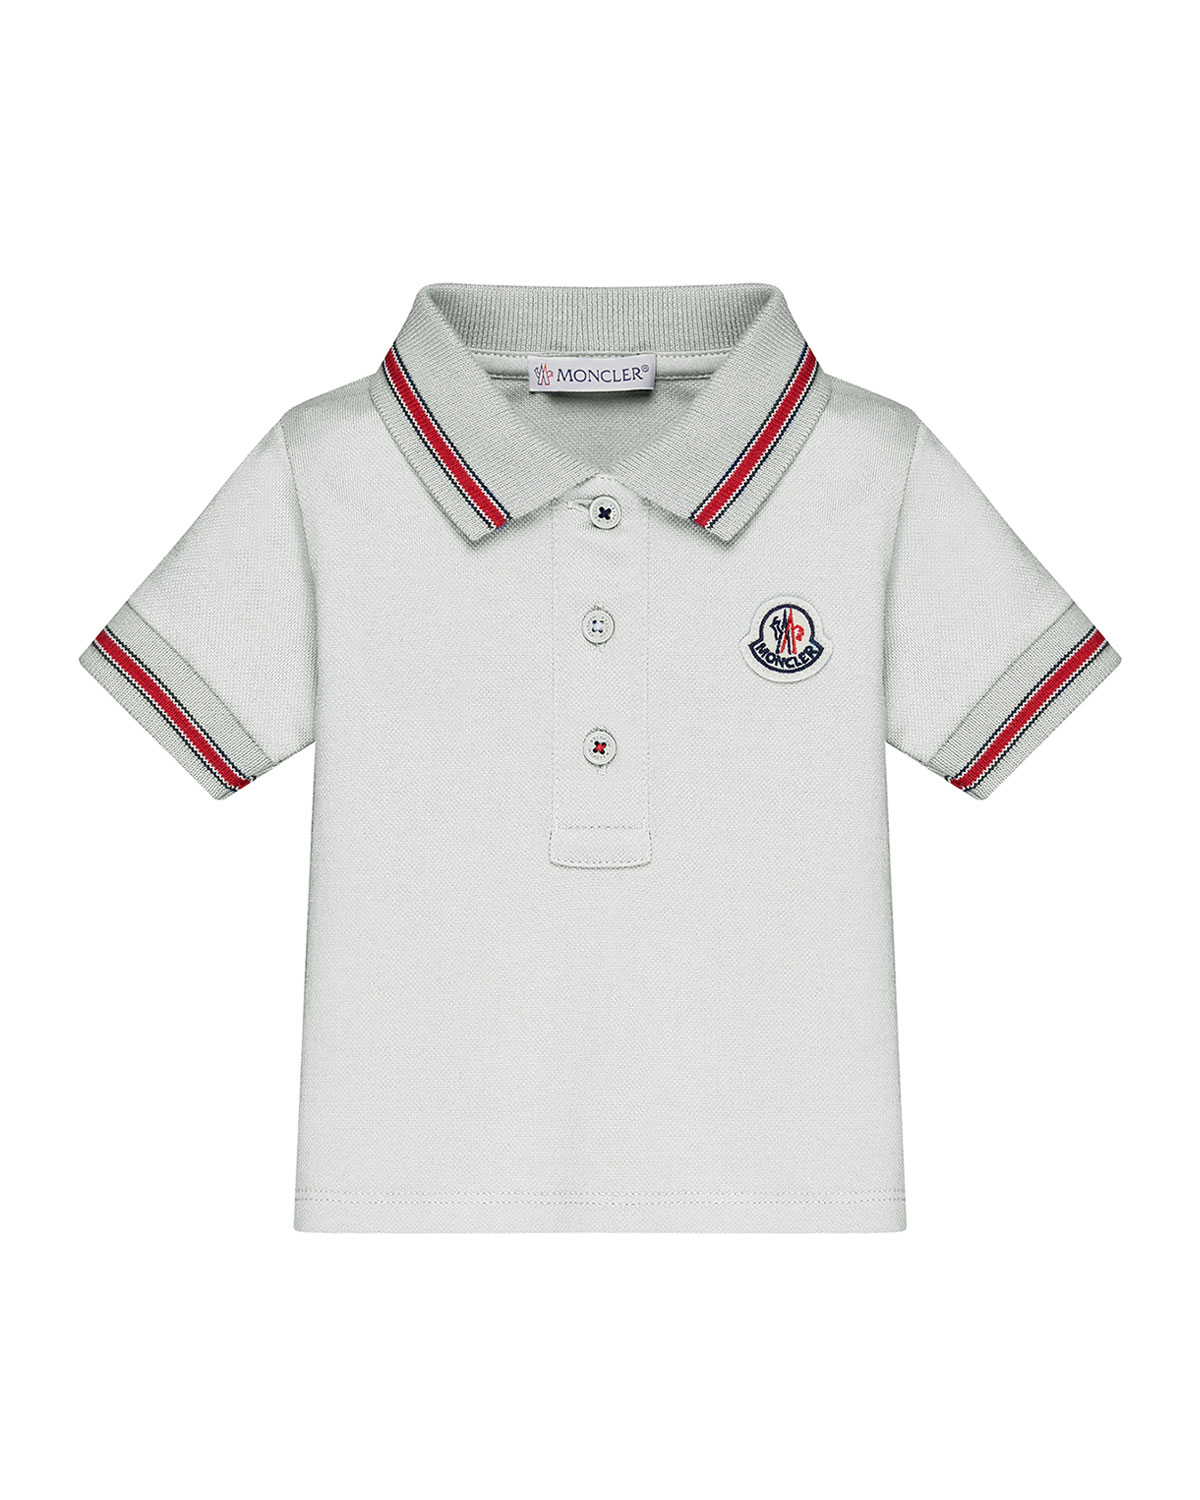 Moncler Short Sleeve Tipped Polo Shirt Size 12m 3t Neiman Marcus